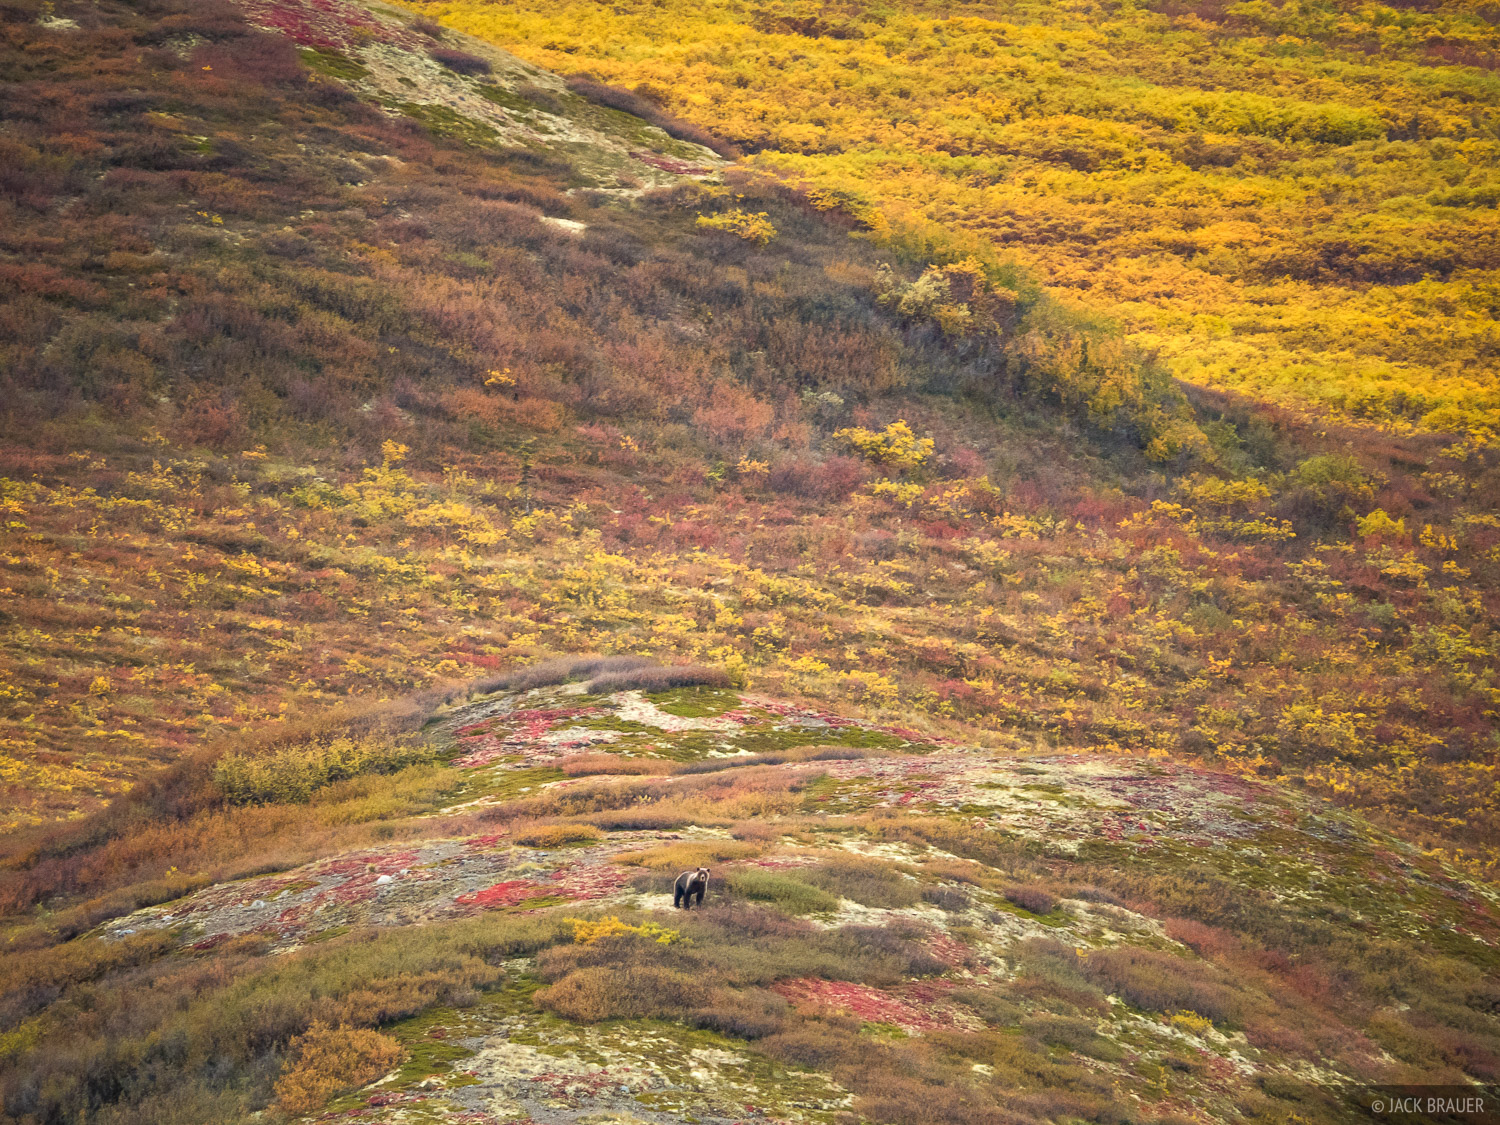 A grizzly bear wanders over the tundra eating berries in the North Klondike River valley - August.